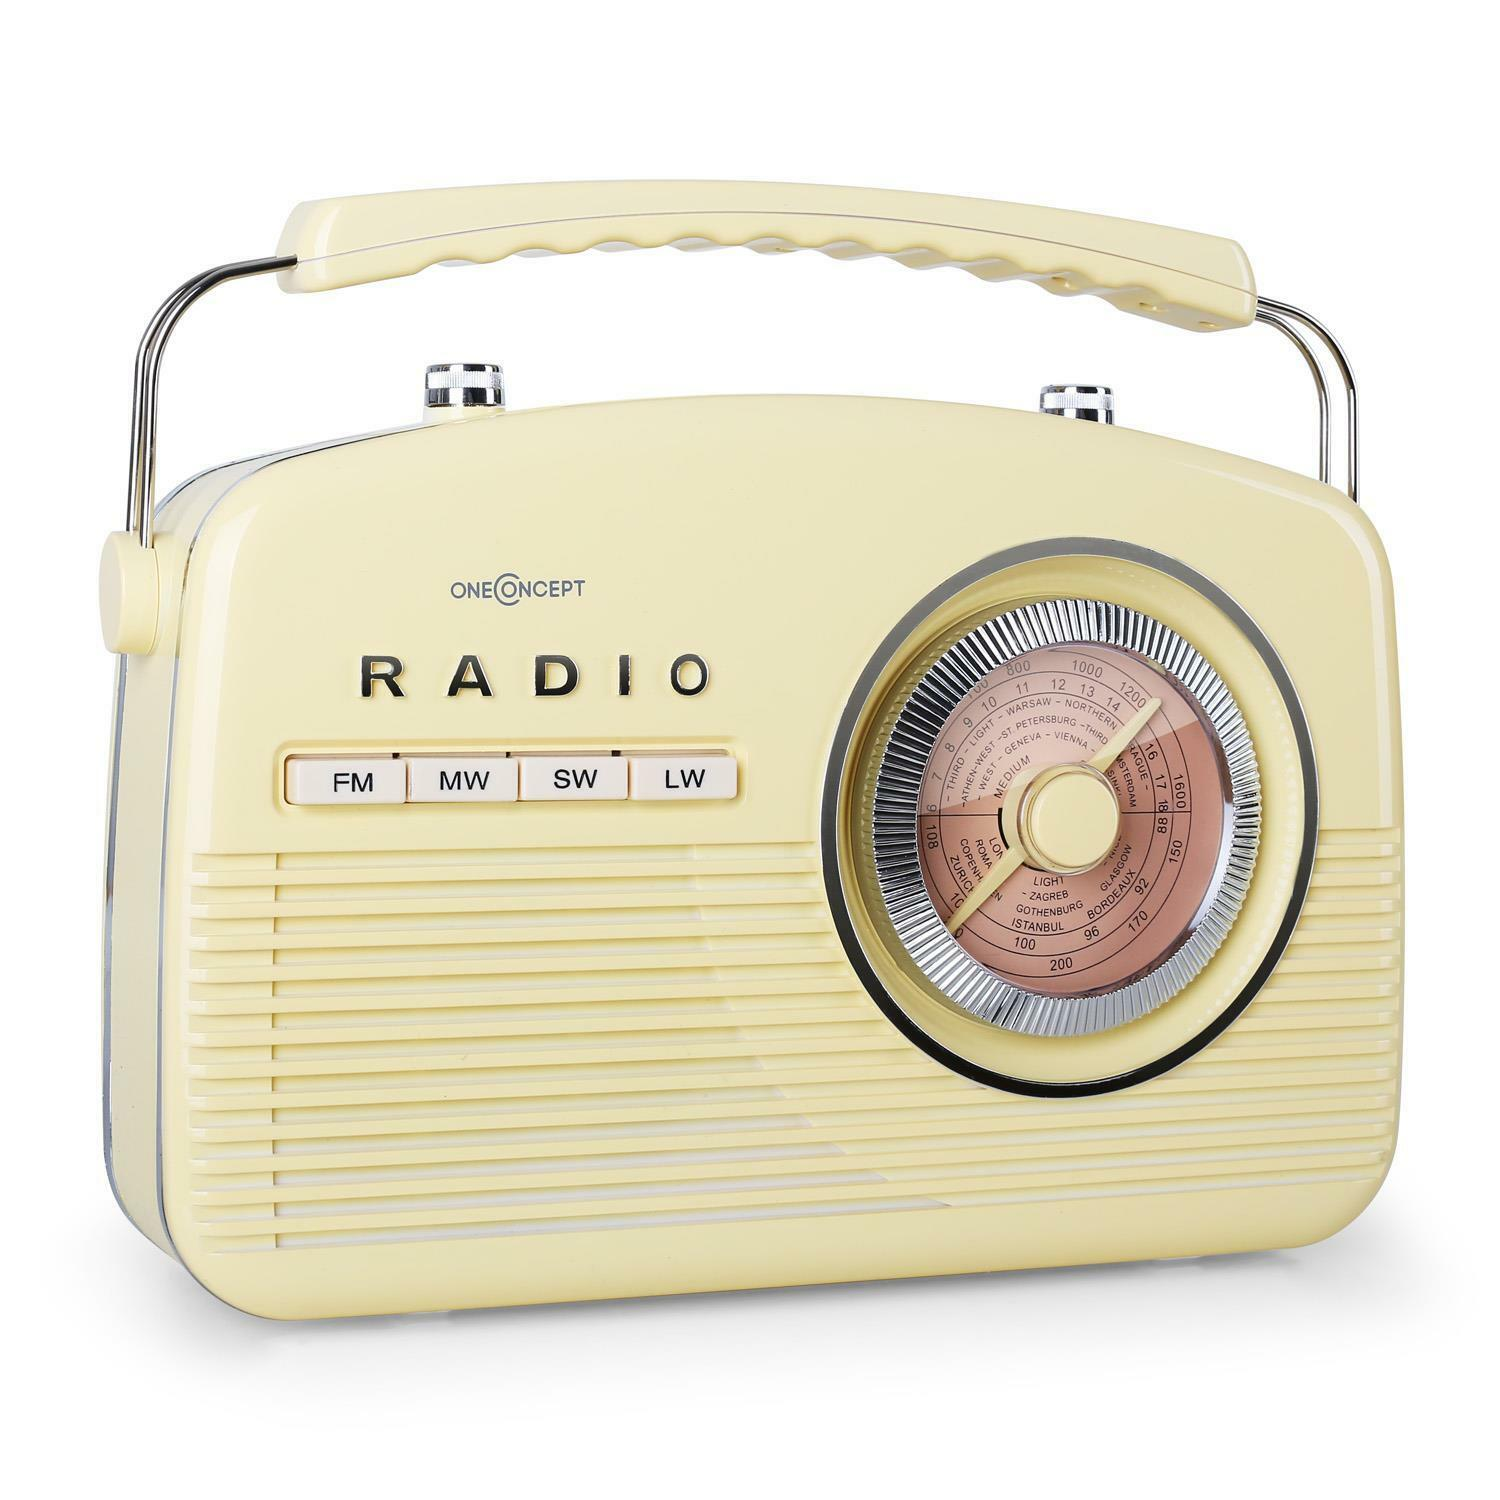 poste radio de cuisine vintage tuner analogique 4 bandes. Black Bedroom Furniture Sets. Home Design Ideas